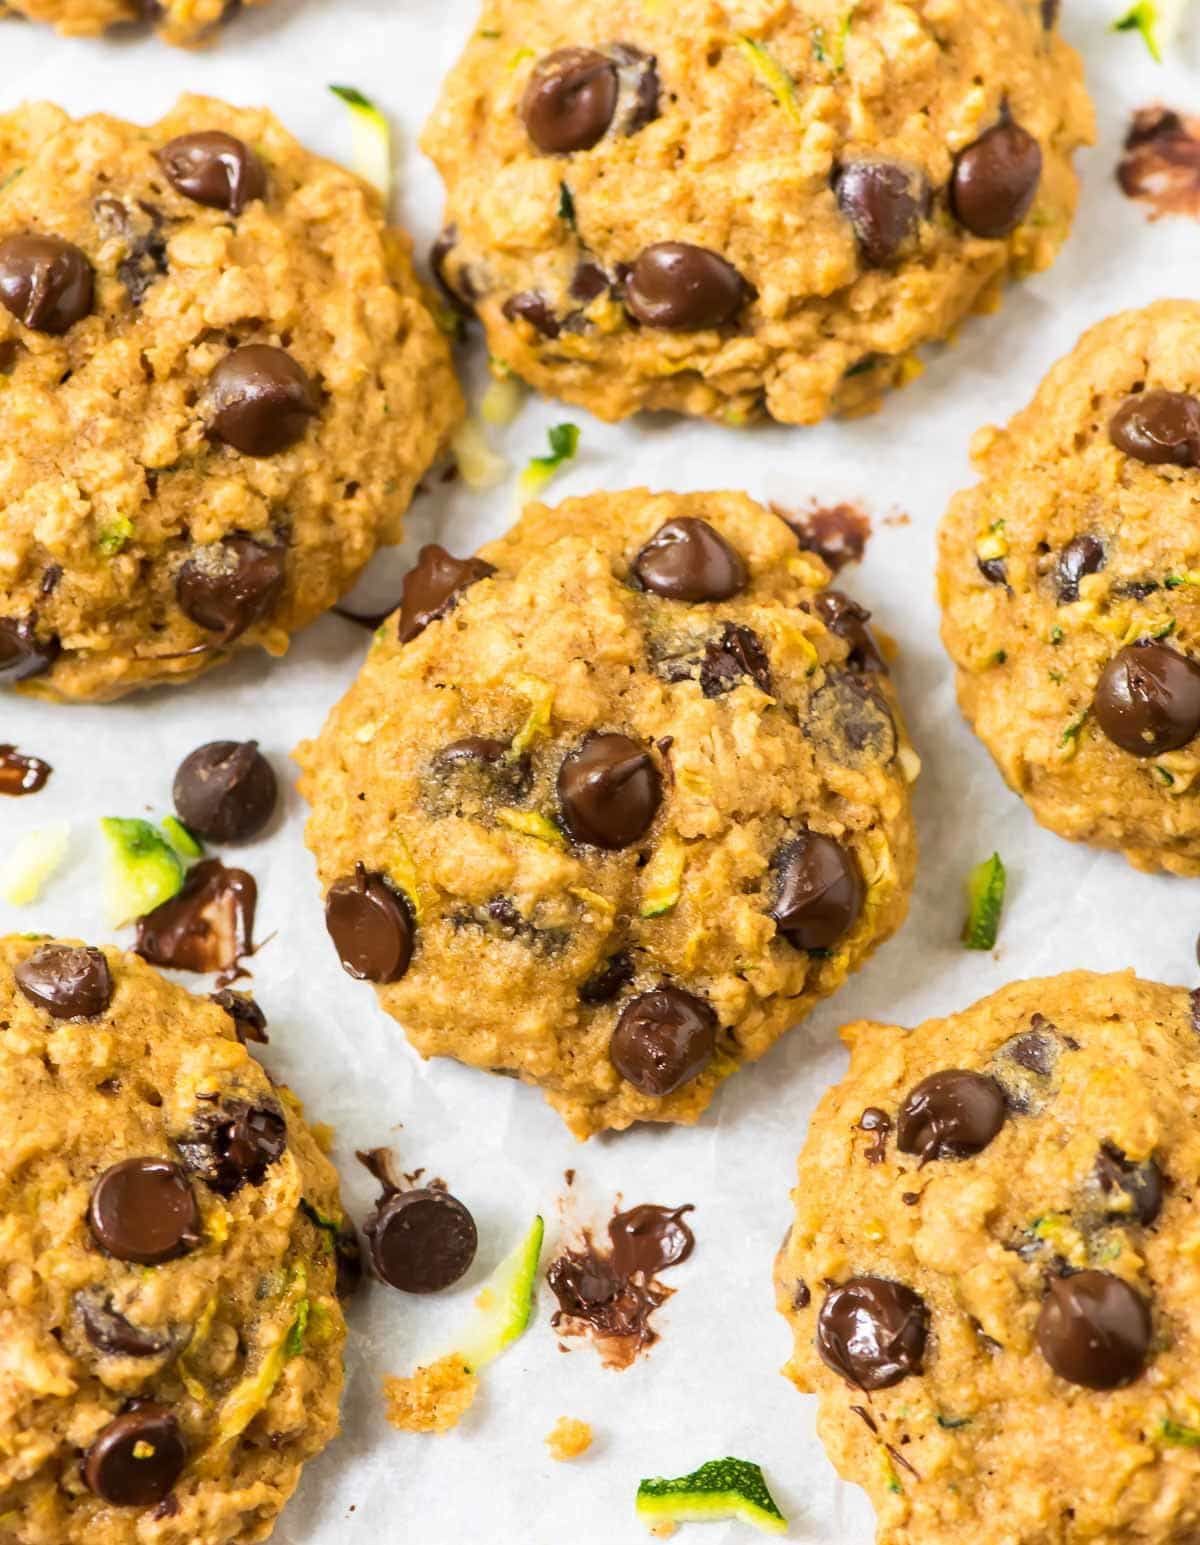 Zucchini Oatmeal Chocolate Chip Cookies. Soft, buttery, healthy cookies that are whole grain and naturally sweetened with honey and coconut sugar. The BEST baking recipe to use up summer zucchini! Easy and can be made gluten free or vegan. Recipe at wellplated.com | @wellplated